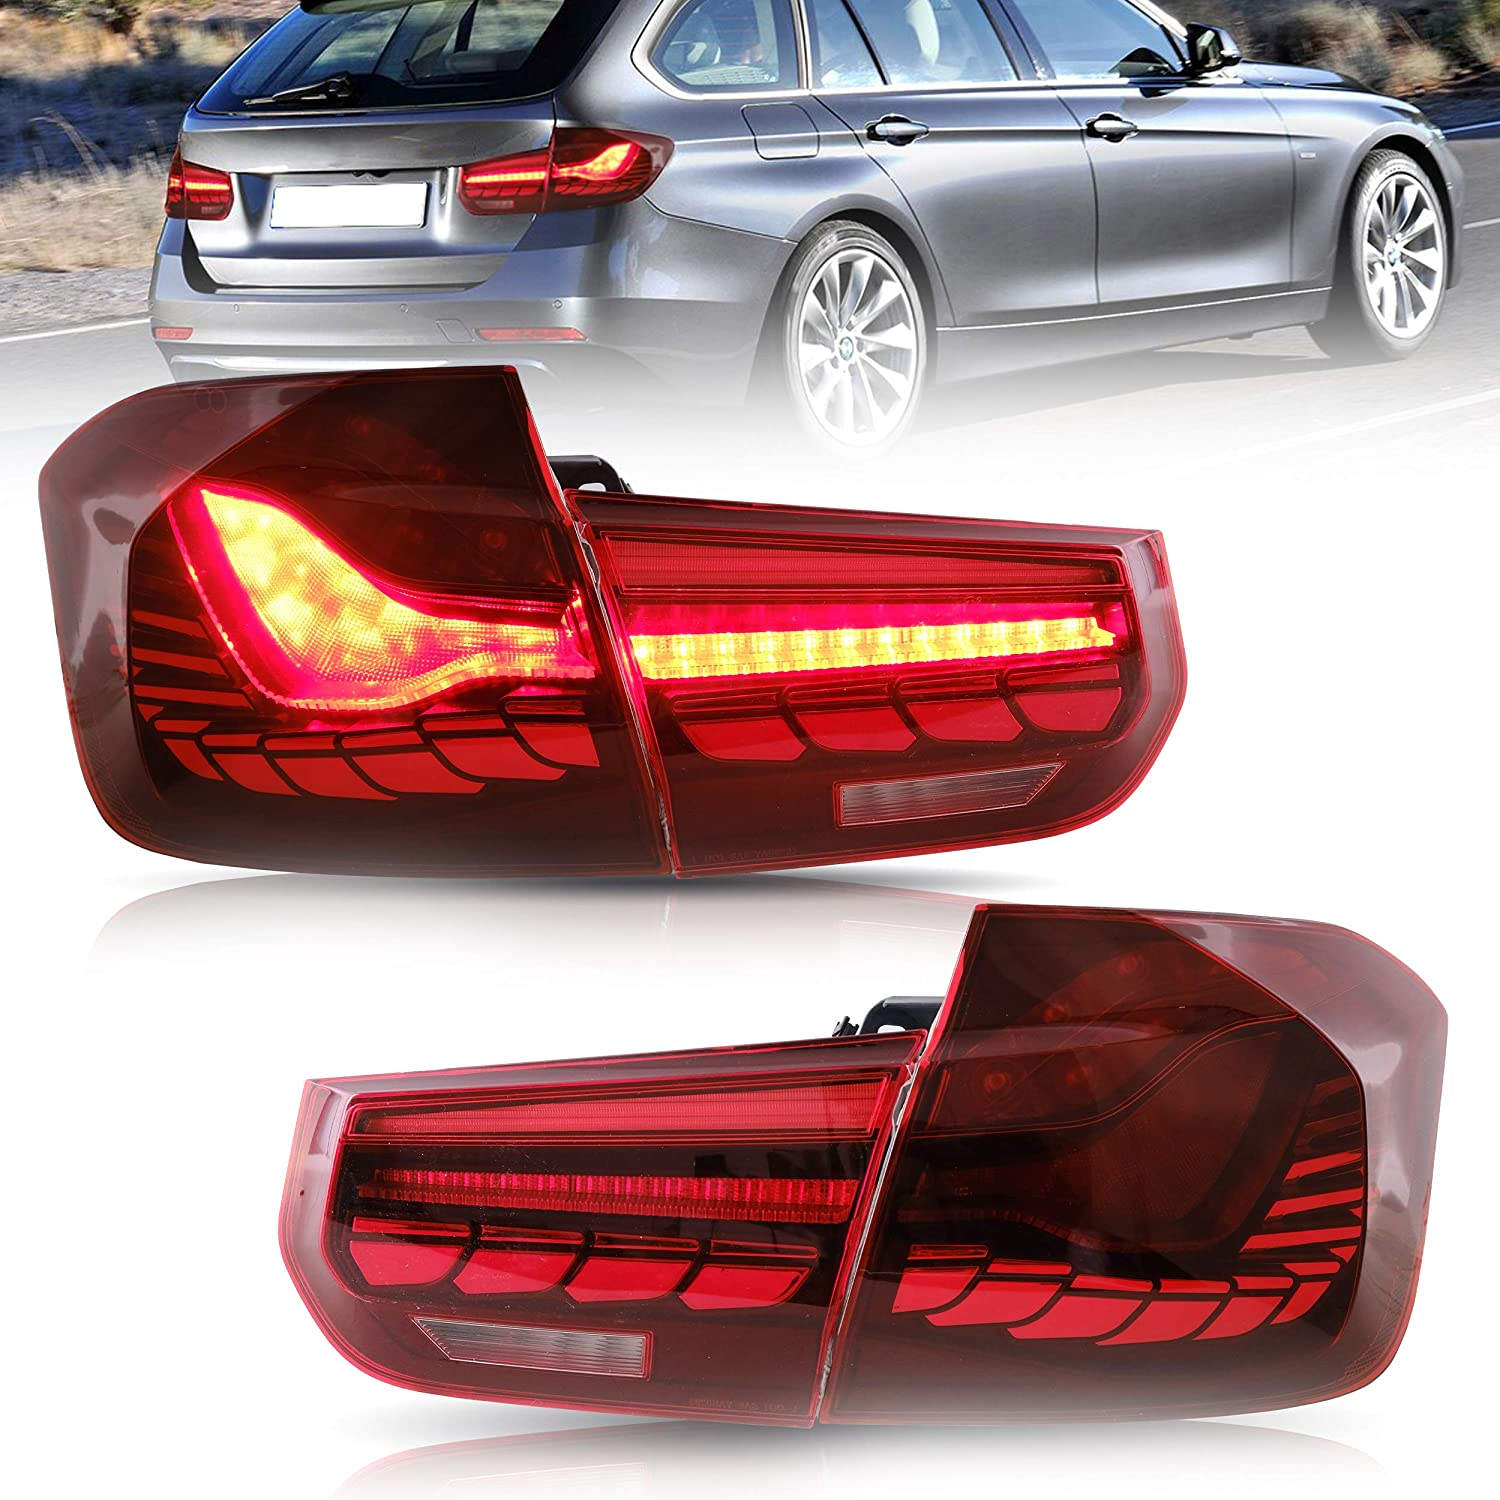 VLAND Tail lights Assembly Fit for 70%OFFアウトレット 3 F30 Series 送料無料 激安 お買い得 キ゛フト 12-15 BMW Plug-